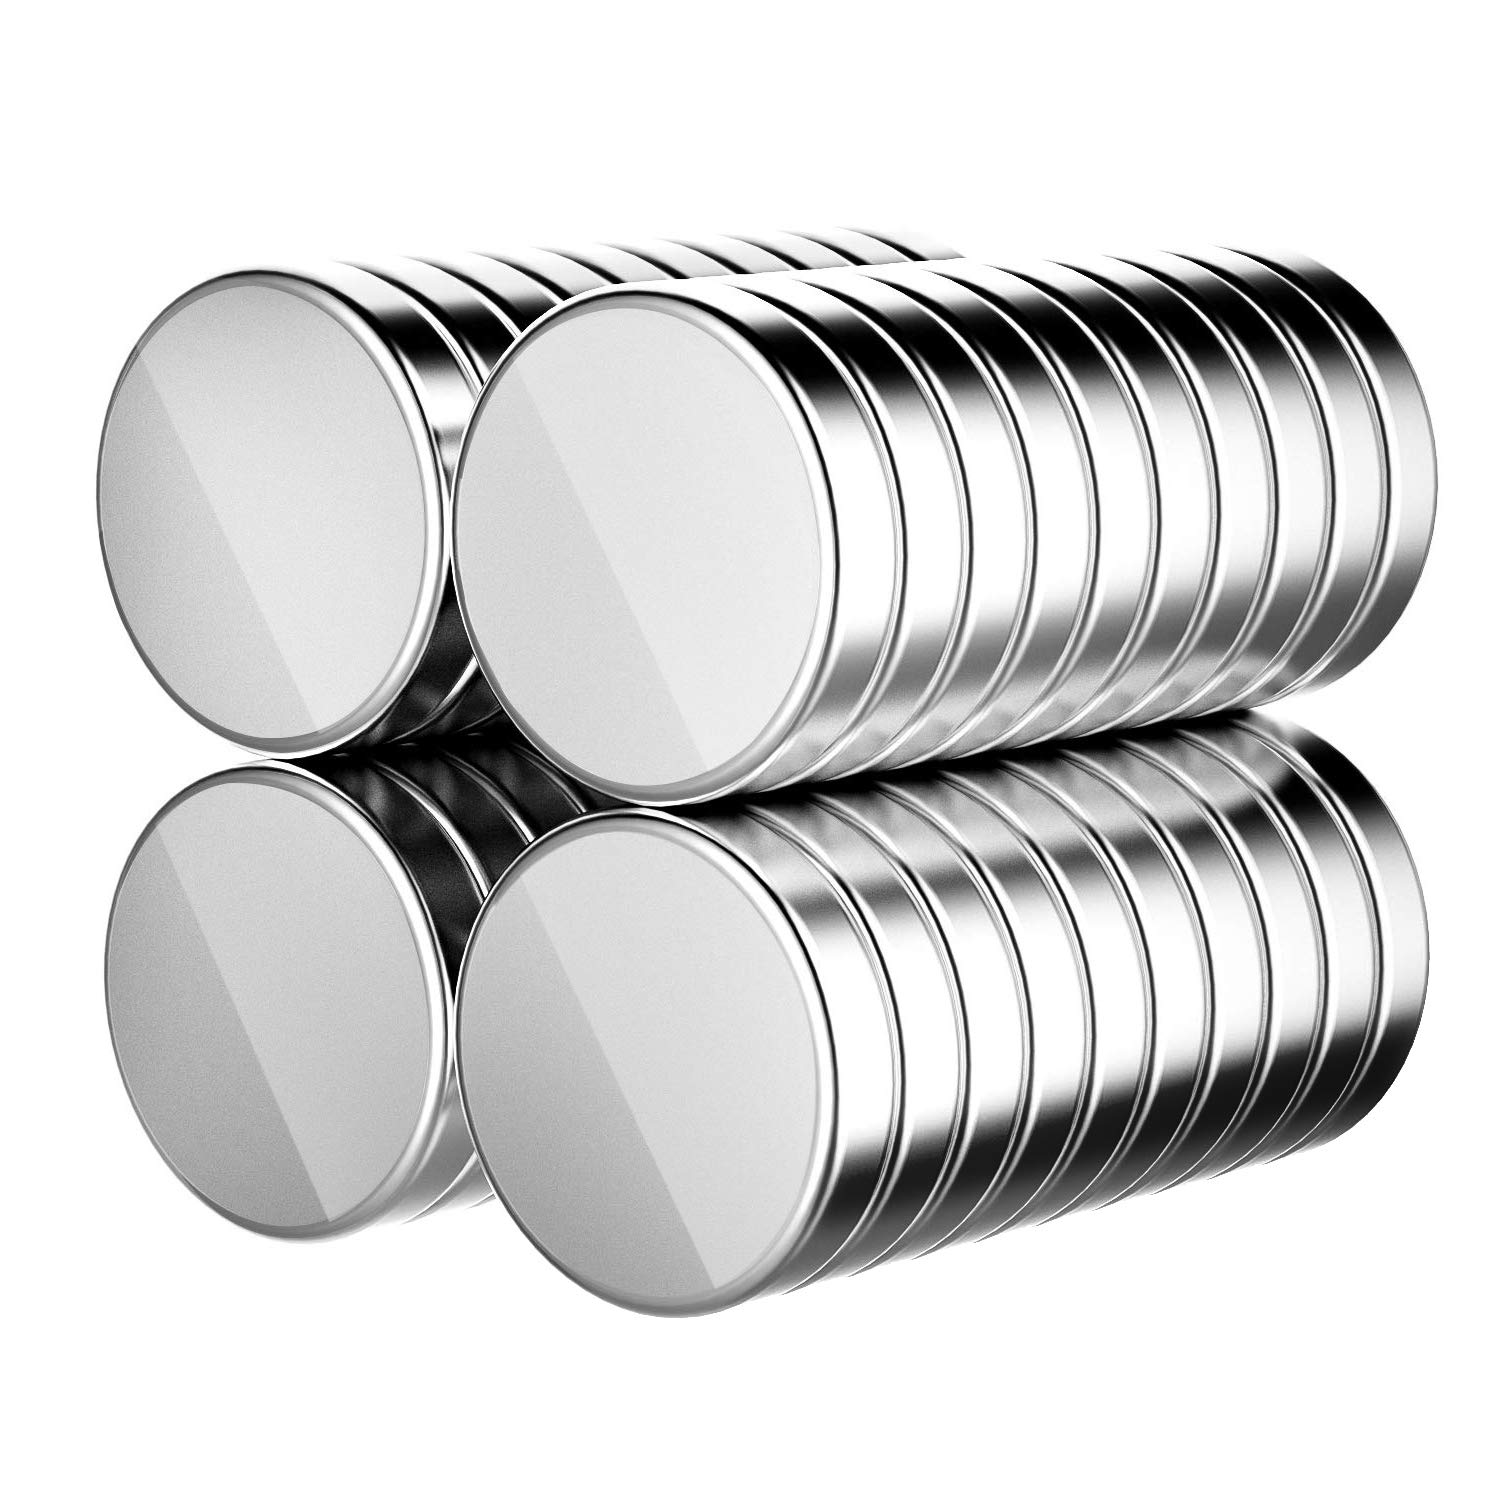 ZJW 50 Pack Neodymium Cylinder Fridge Magnets with 10 Pack Metal Magnetic Push Pins for Noticeboard Fridge Pinboard Magnetic board